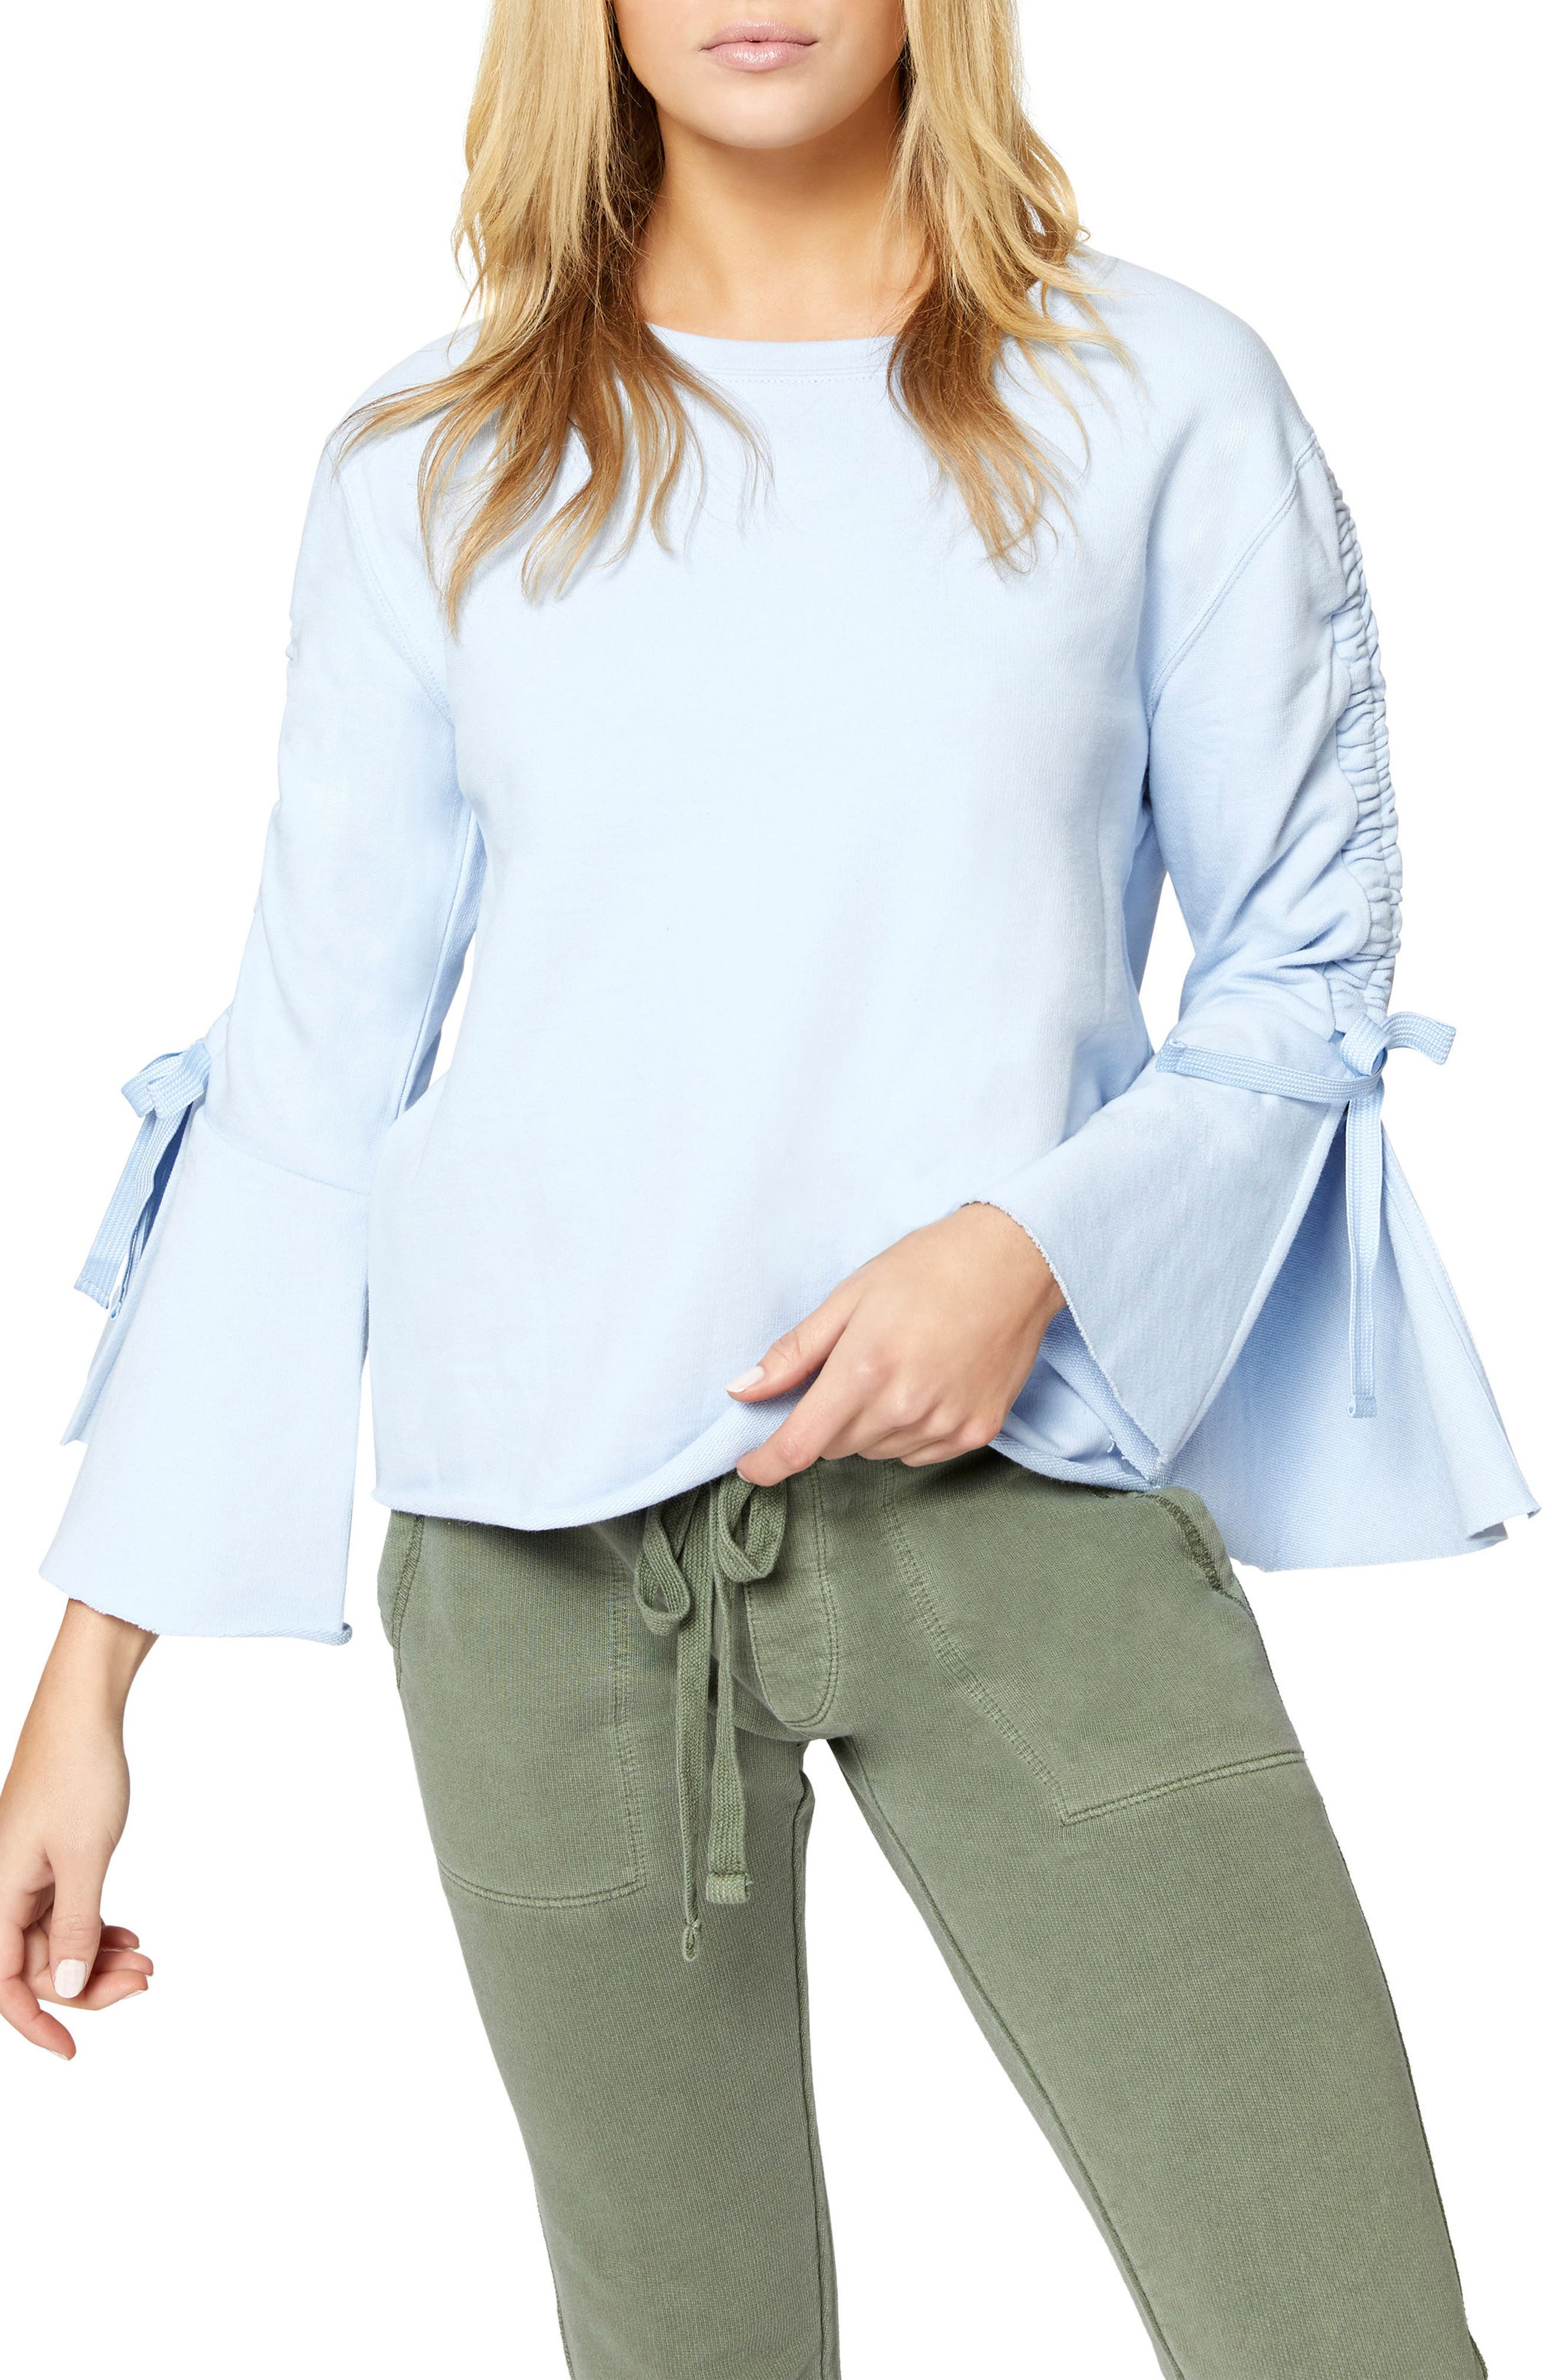 Upper West Bell Sleeve Sweatshirt,                             Main thumbnail 1, color,                             Bluebell